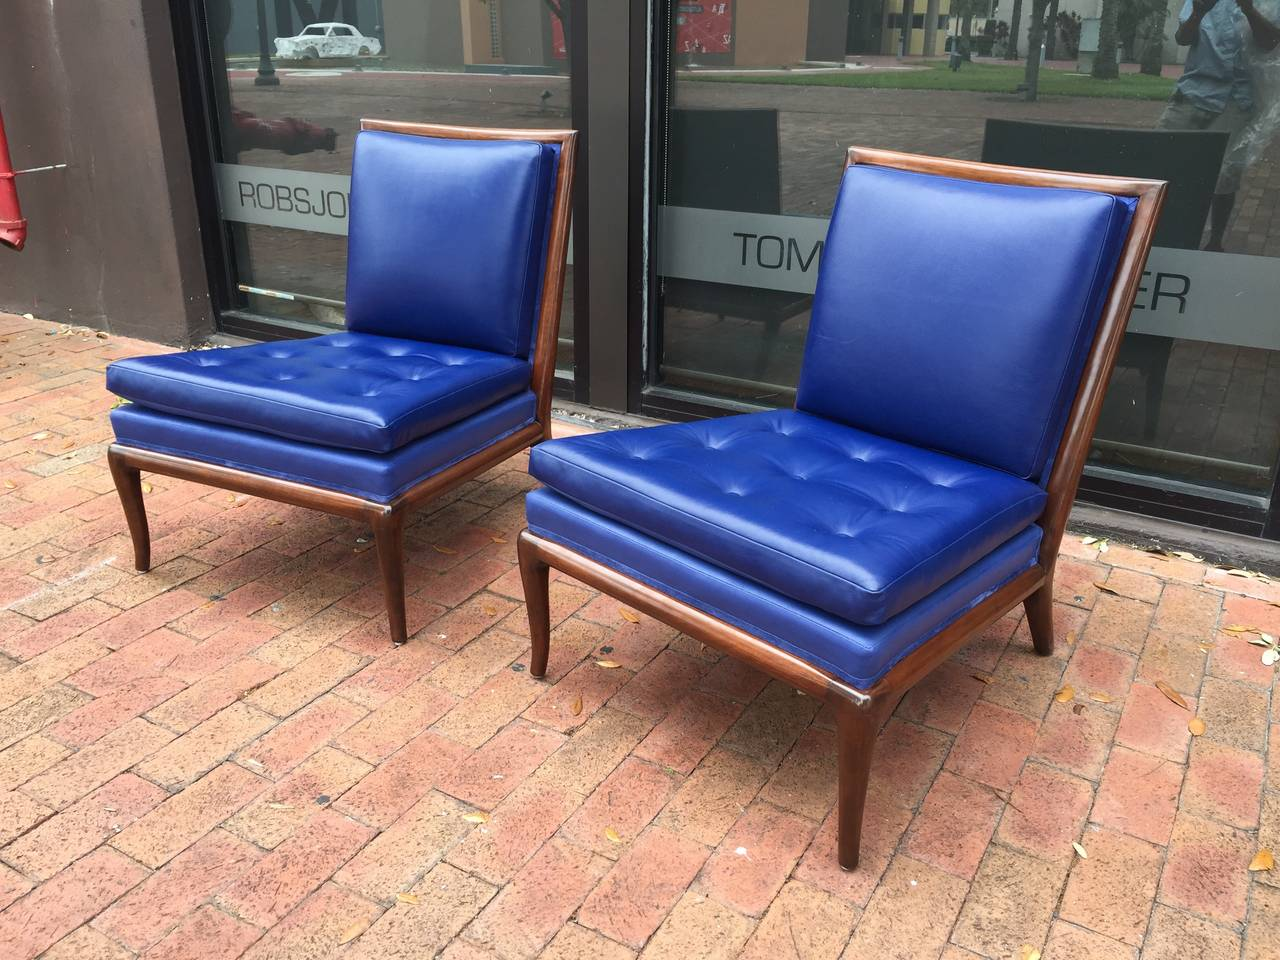 Classic pair of slipper chairs designed by T.H. Robsjohn-Gibbings, circa 1954. The frames are walnut and the chairs have been recently reupholstered in button tufted soft Yves Klein blue leather. To die for!